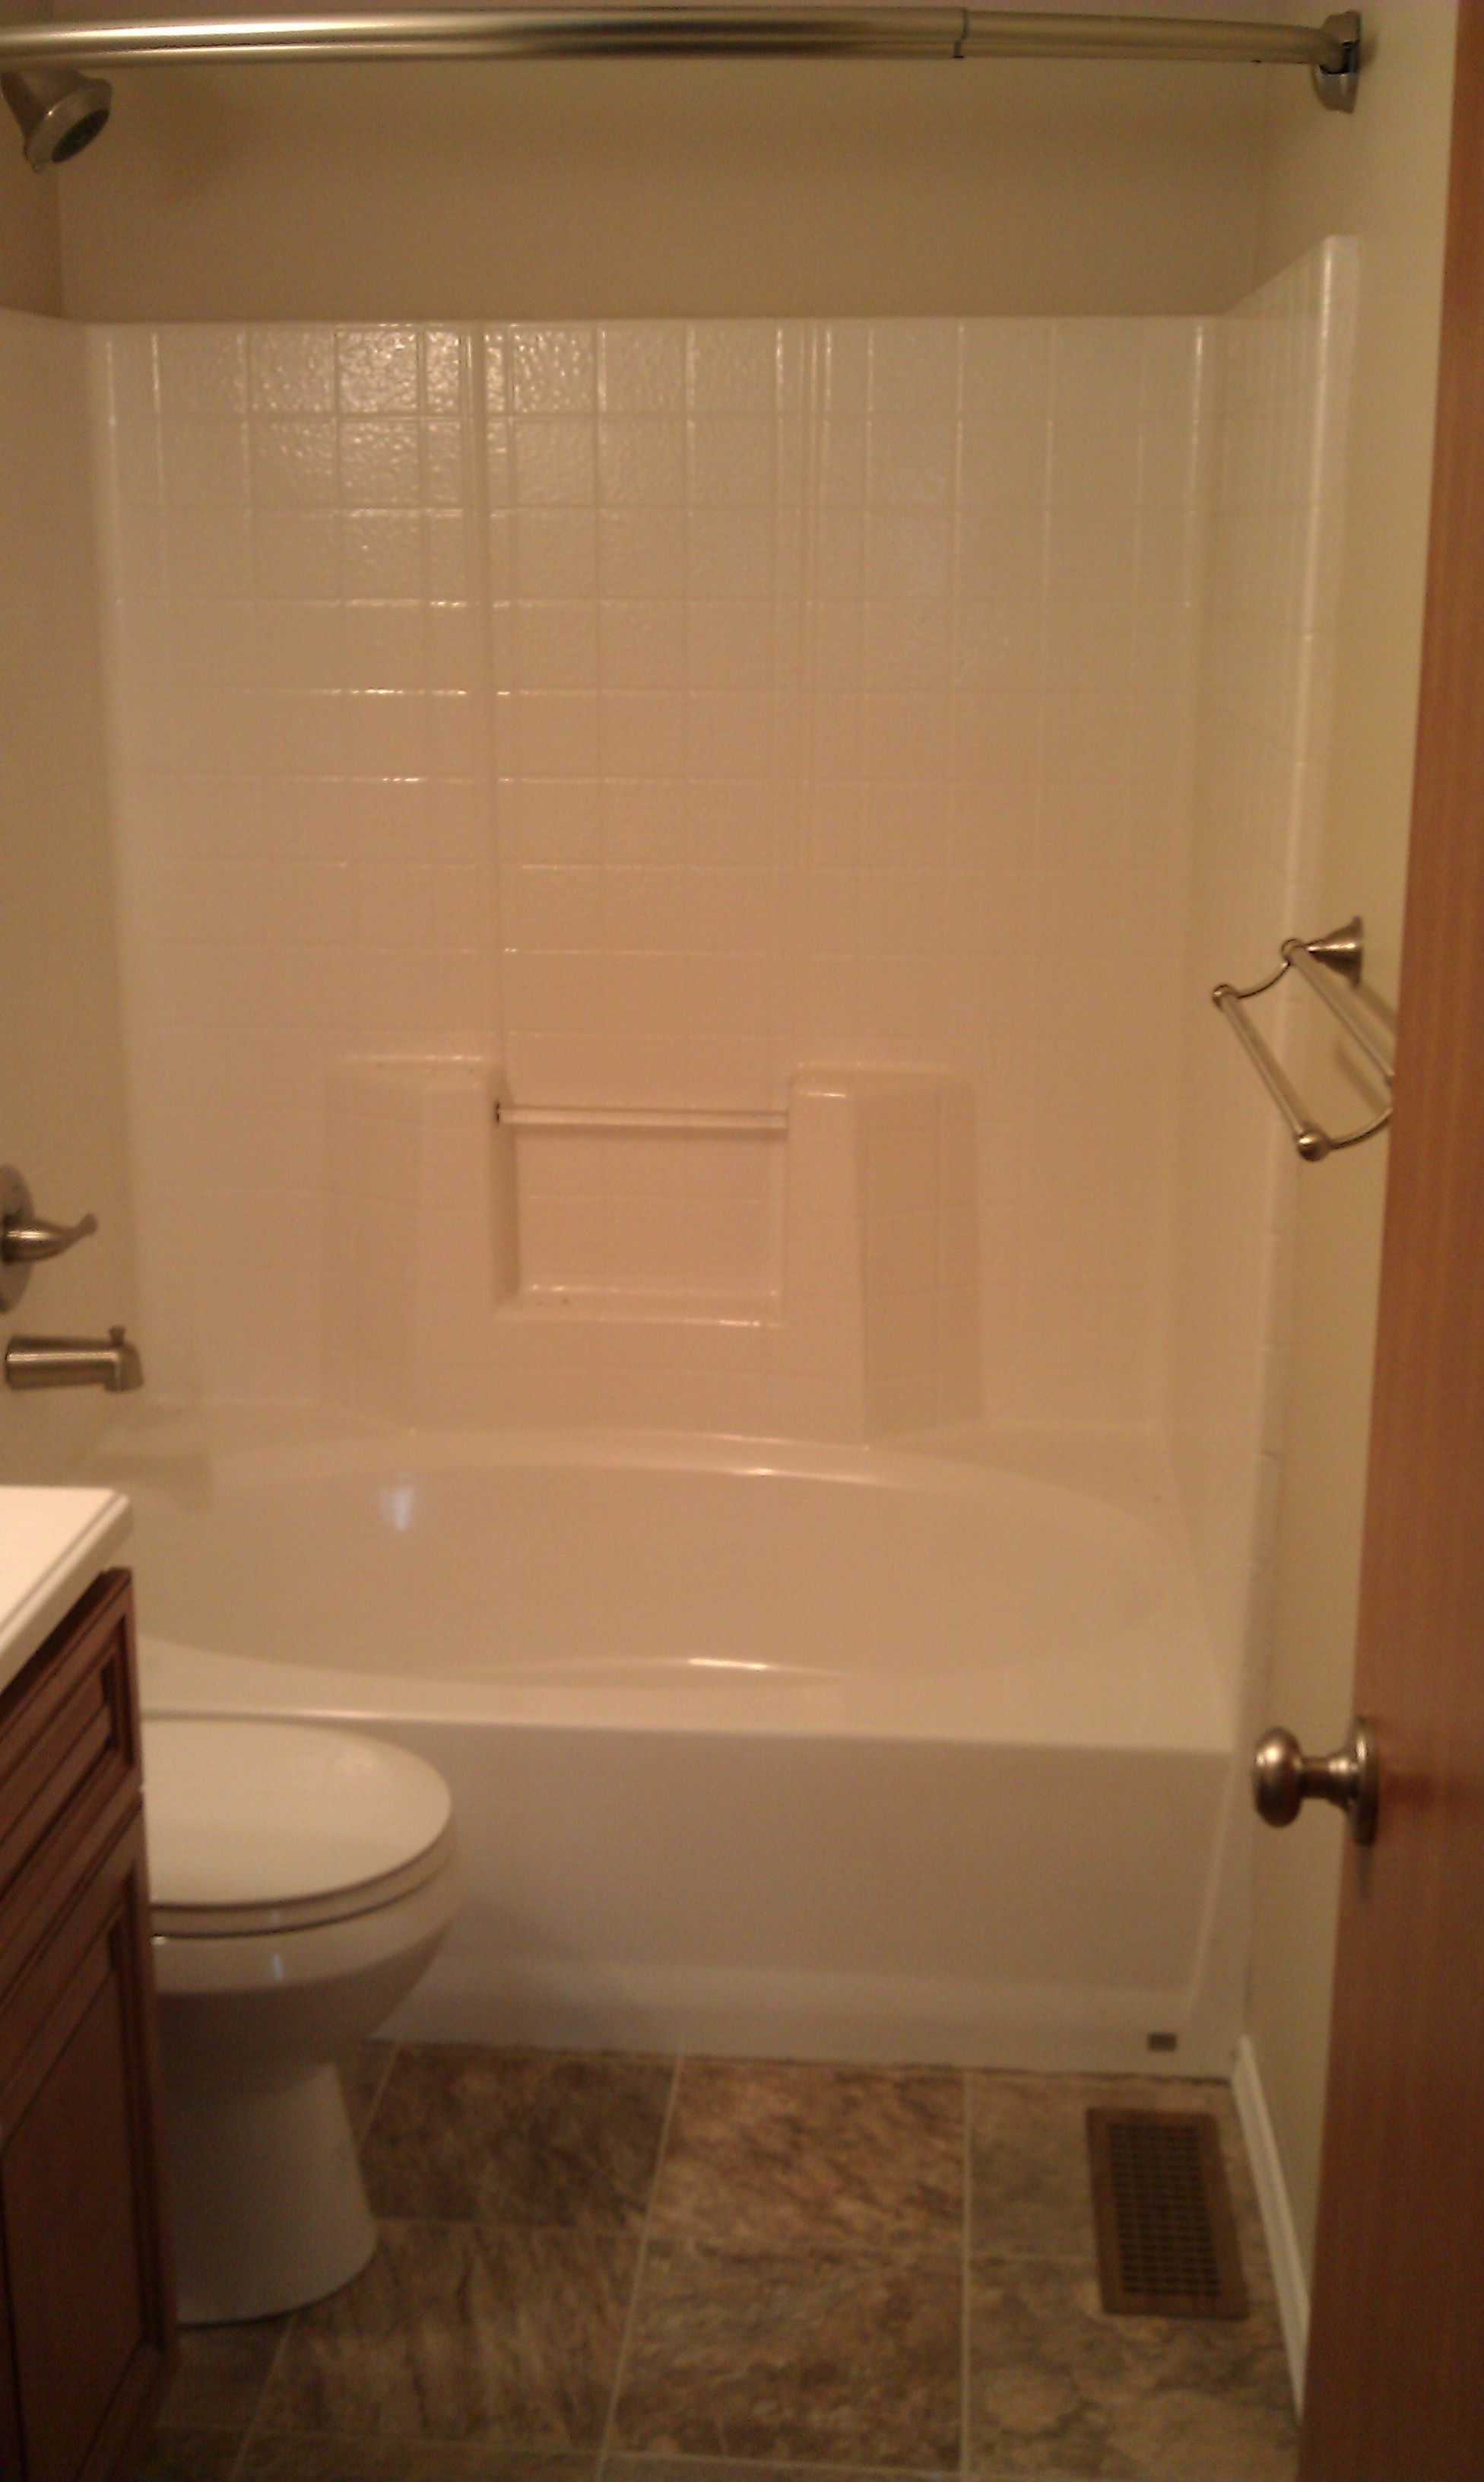 tub and shower surrounds one piece. The Shower Bar Has An Additional For Hanging Towels  Great Our Small Bathroom Tub Surround Is Seamless All One Piece No Our Spacious Oval With Curved